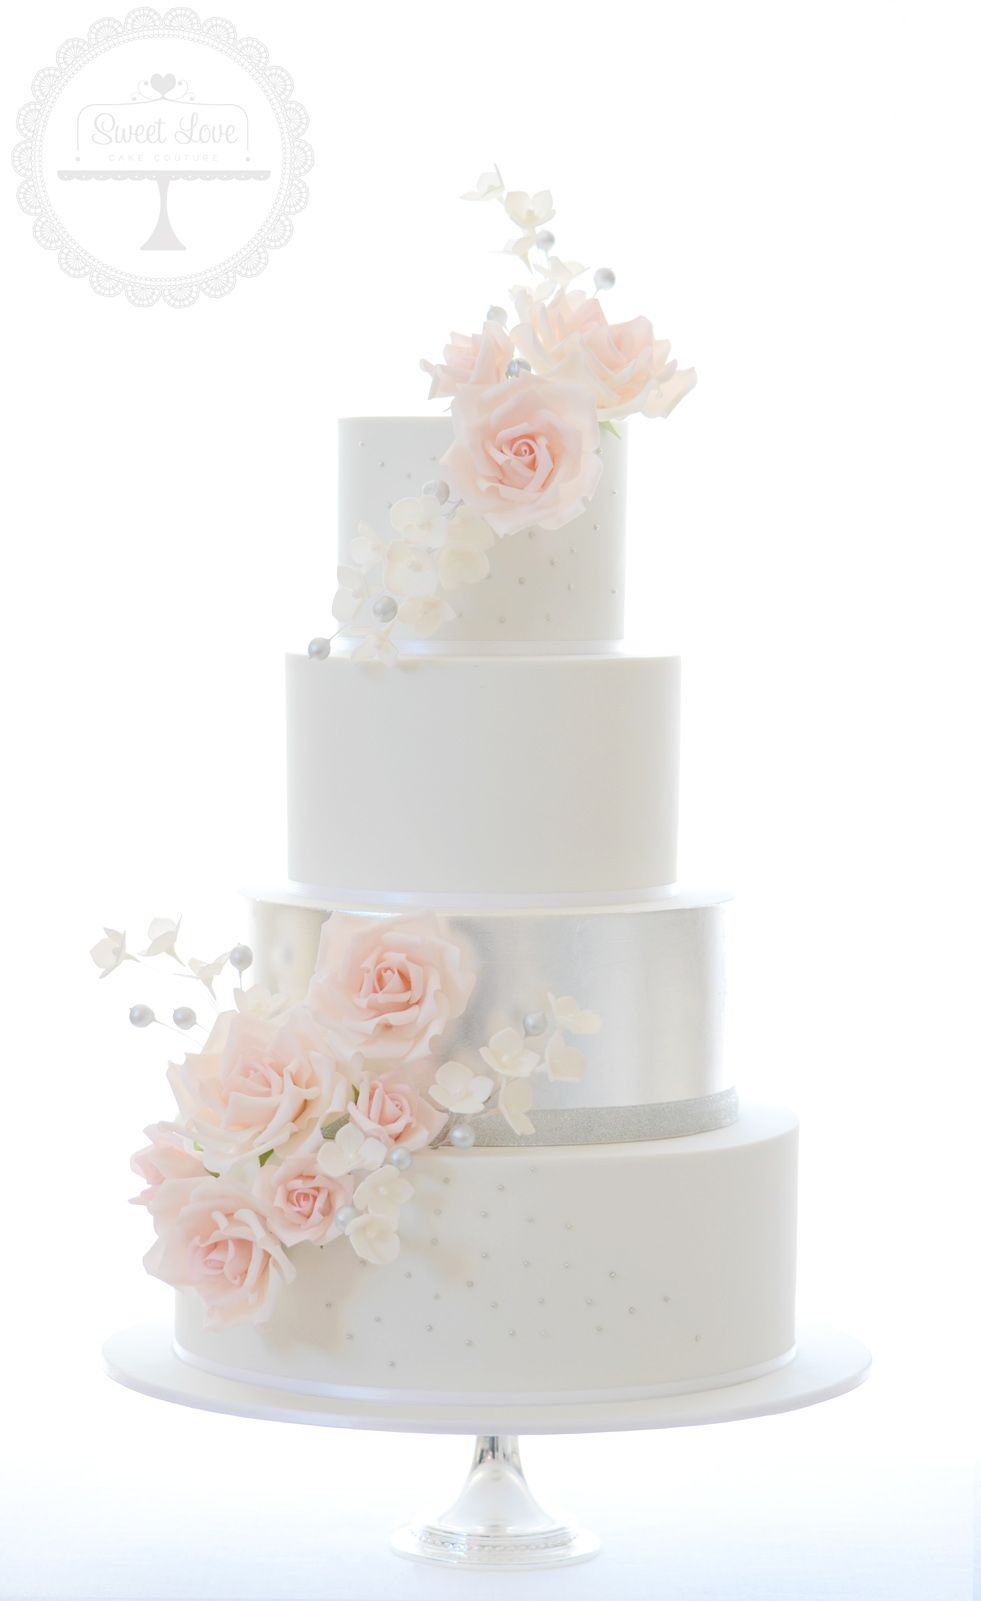 edible sugar flowers for wedding cakes 2 the ultimate in wedding cakes featuring edible 3830